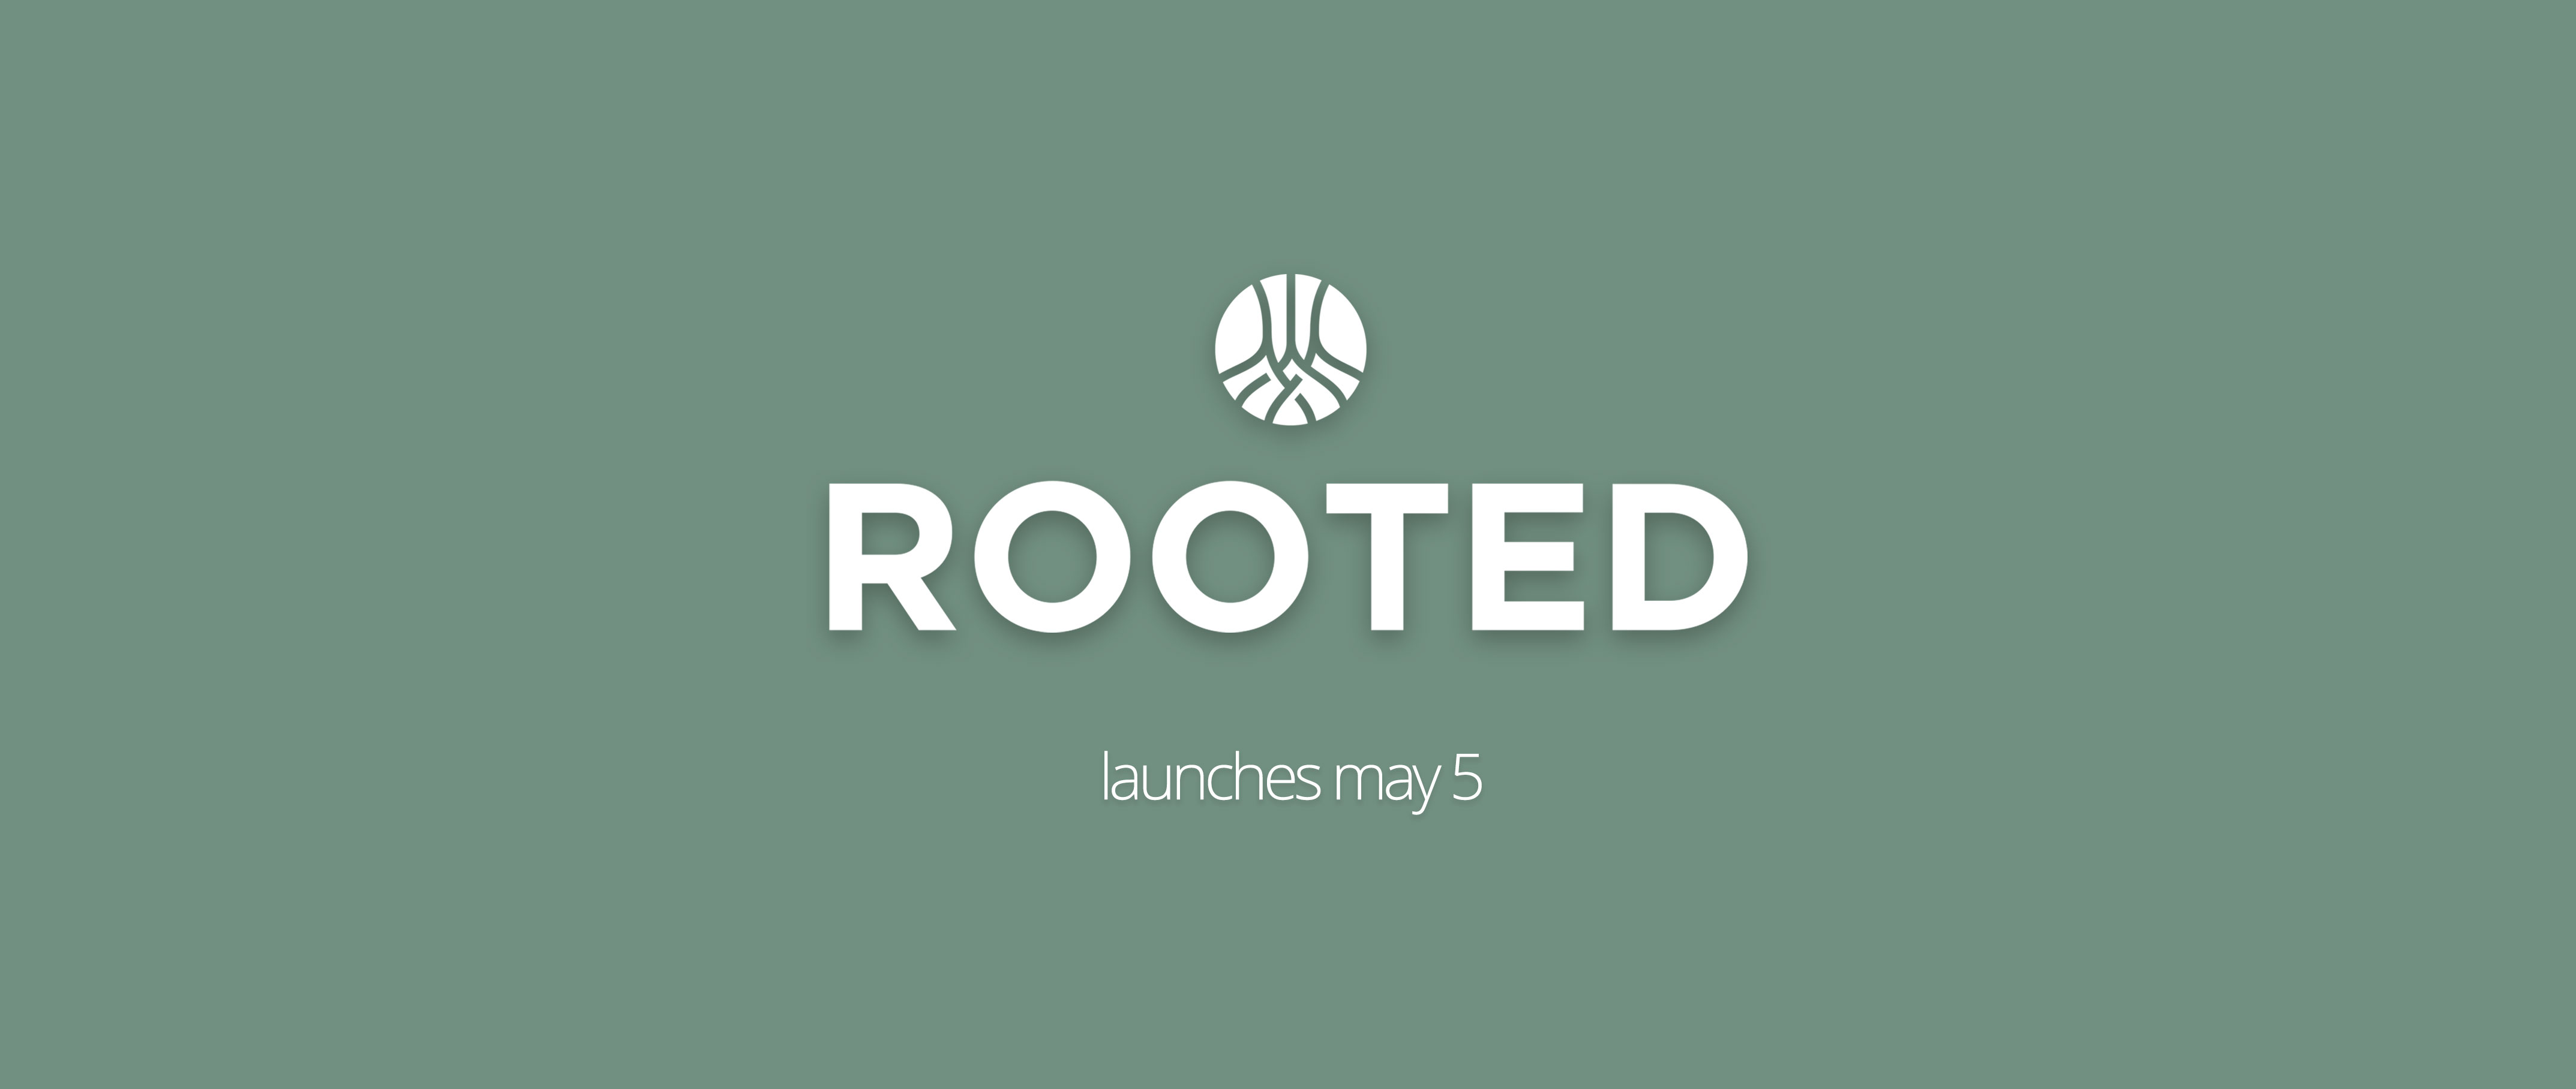 rooted-webslide image